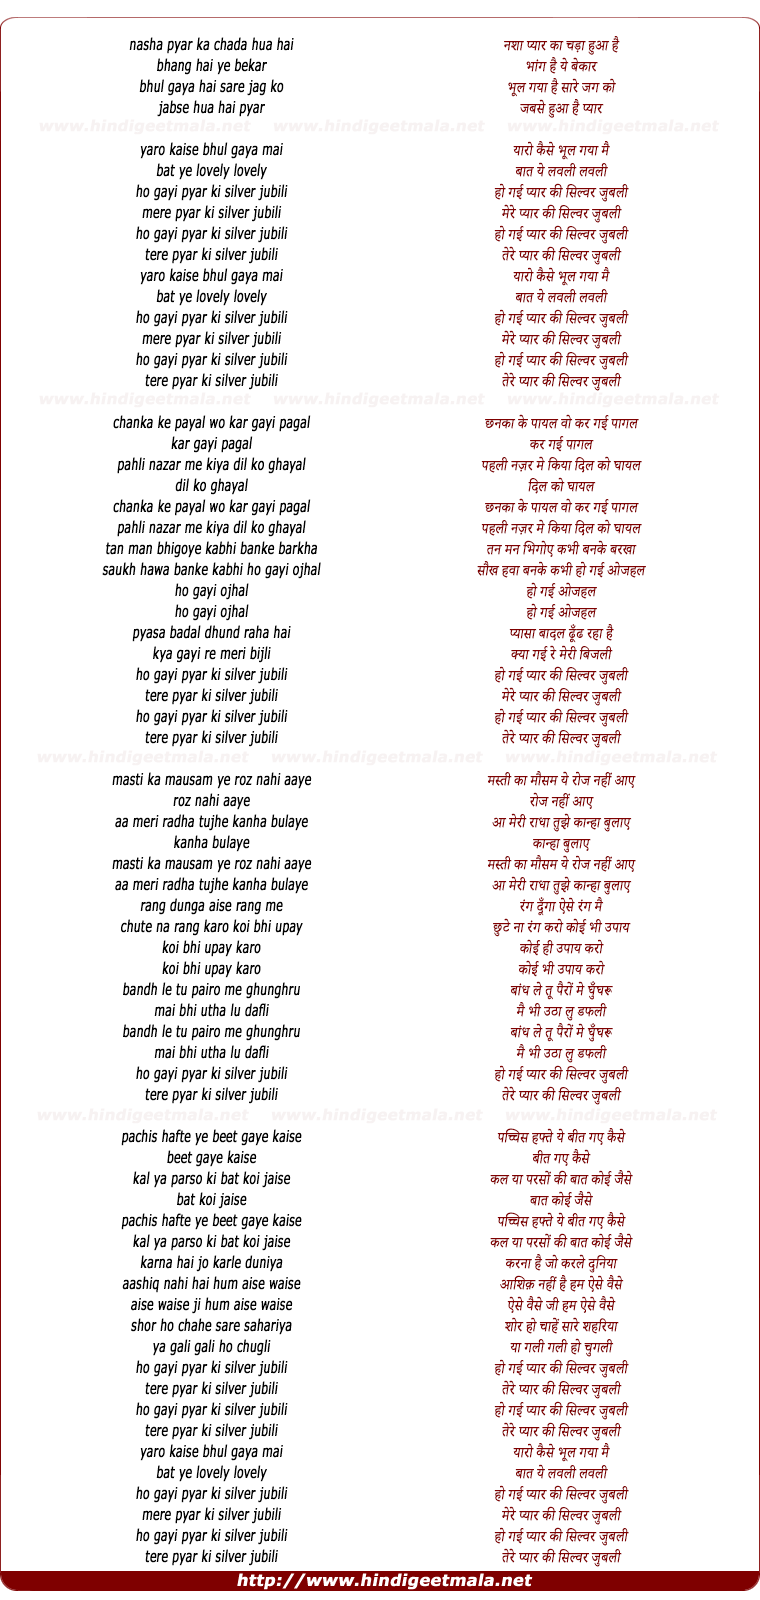 lyrics of song Pyar Ki Silver Jubili